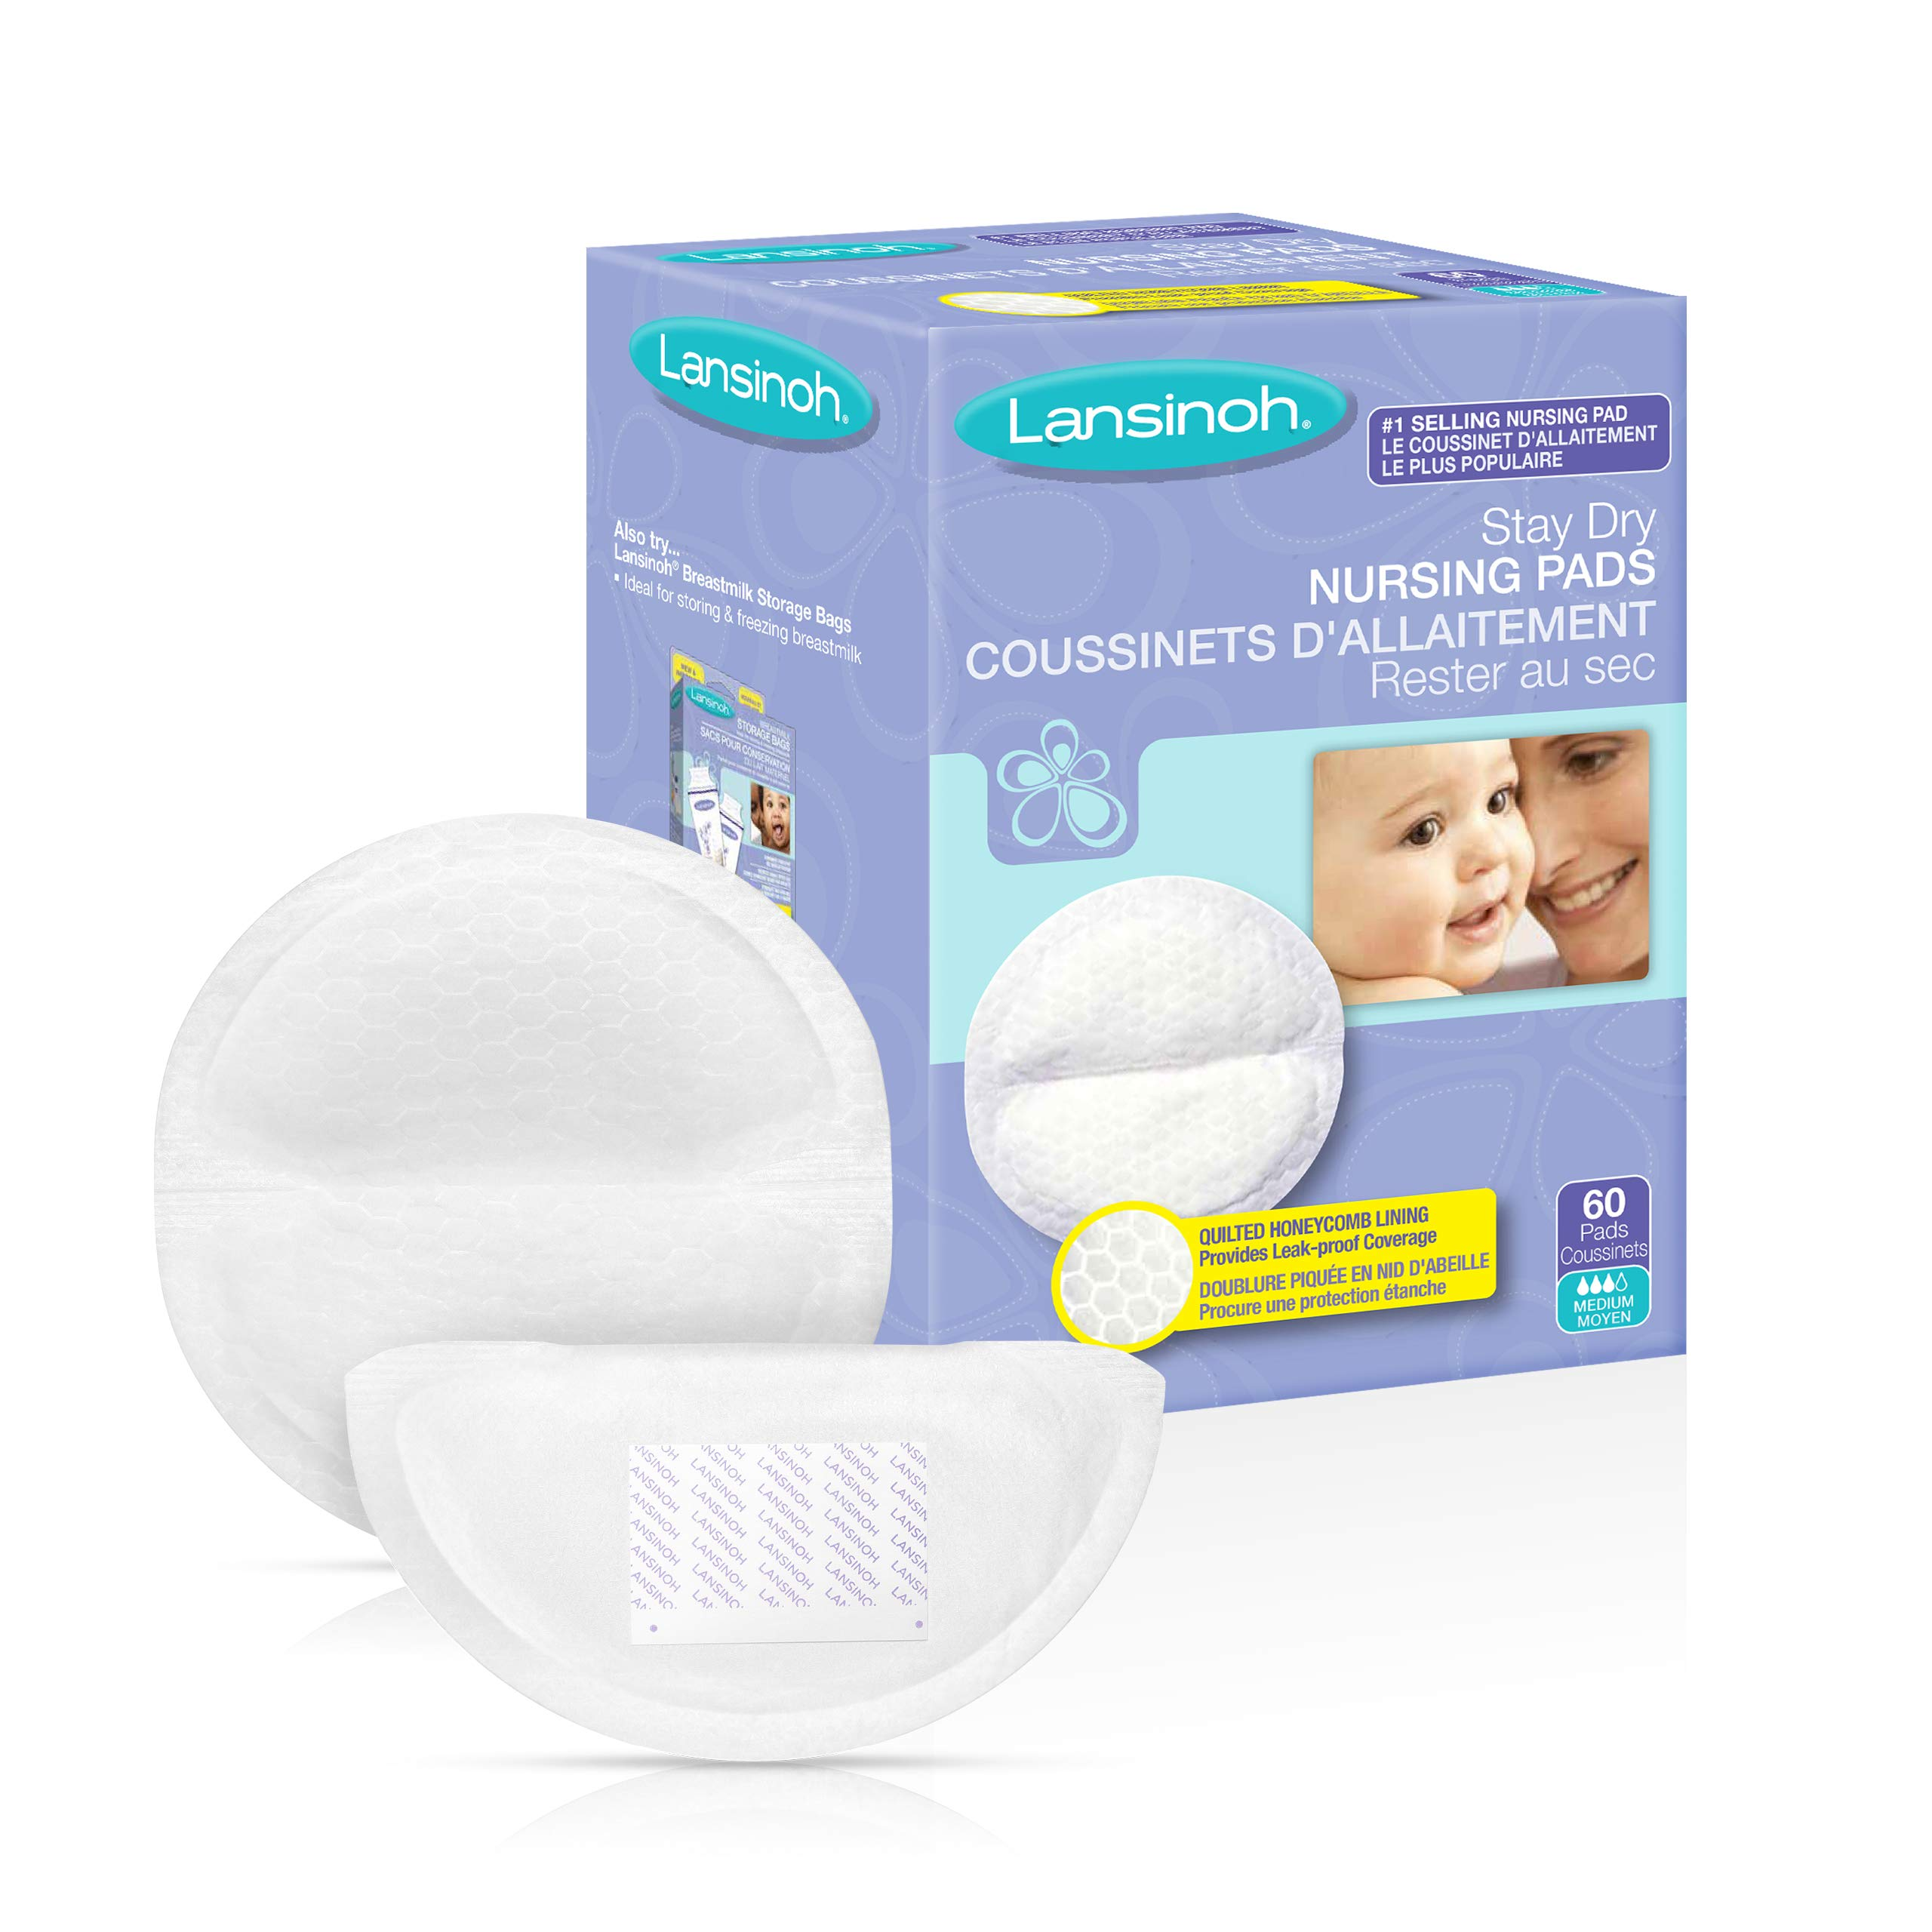 Lansinoh Stay Dry Disposable Nursing Pads for Breastfeeding, 240 count by Lansinoh